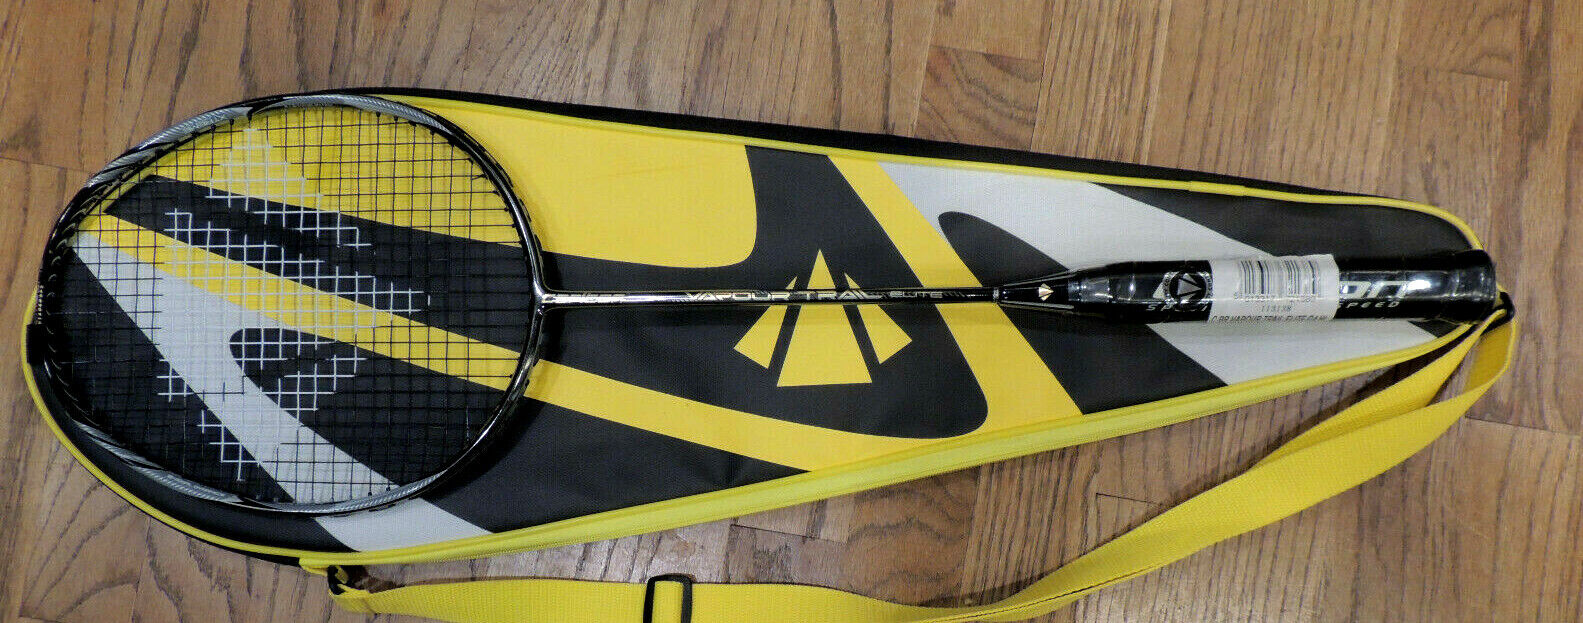 Carlton Vapour Trail Elite G4 HL Badminton Racket raquet New w case